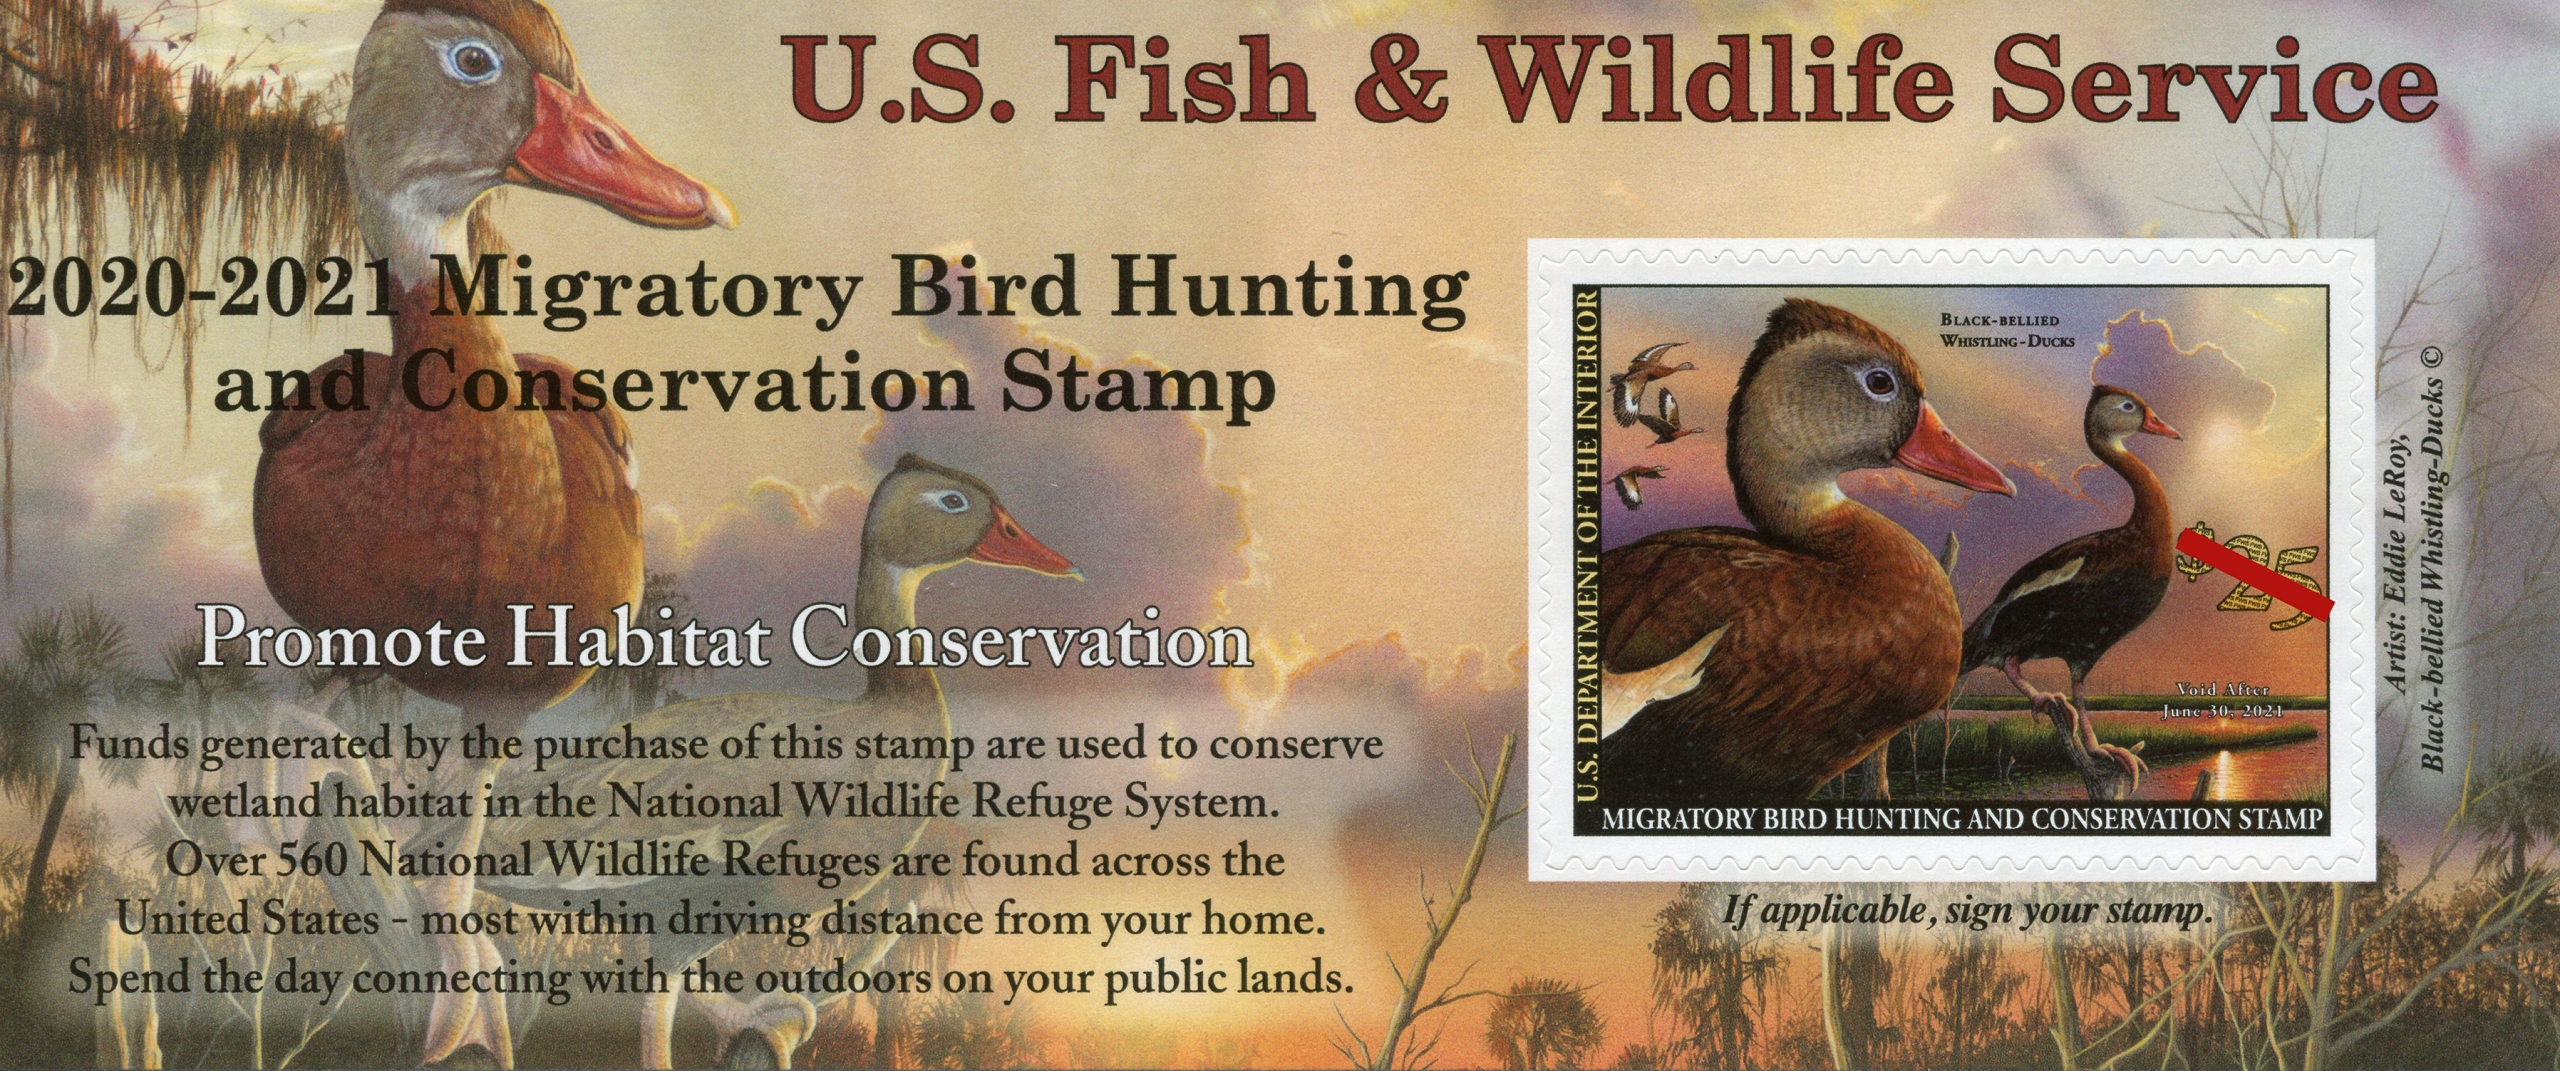 2020 Federal Us Christmas Stamps 2020 2021 Duck Stamp   American Birding Association